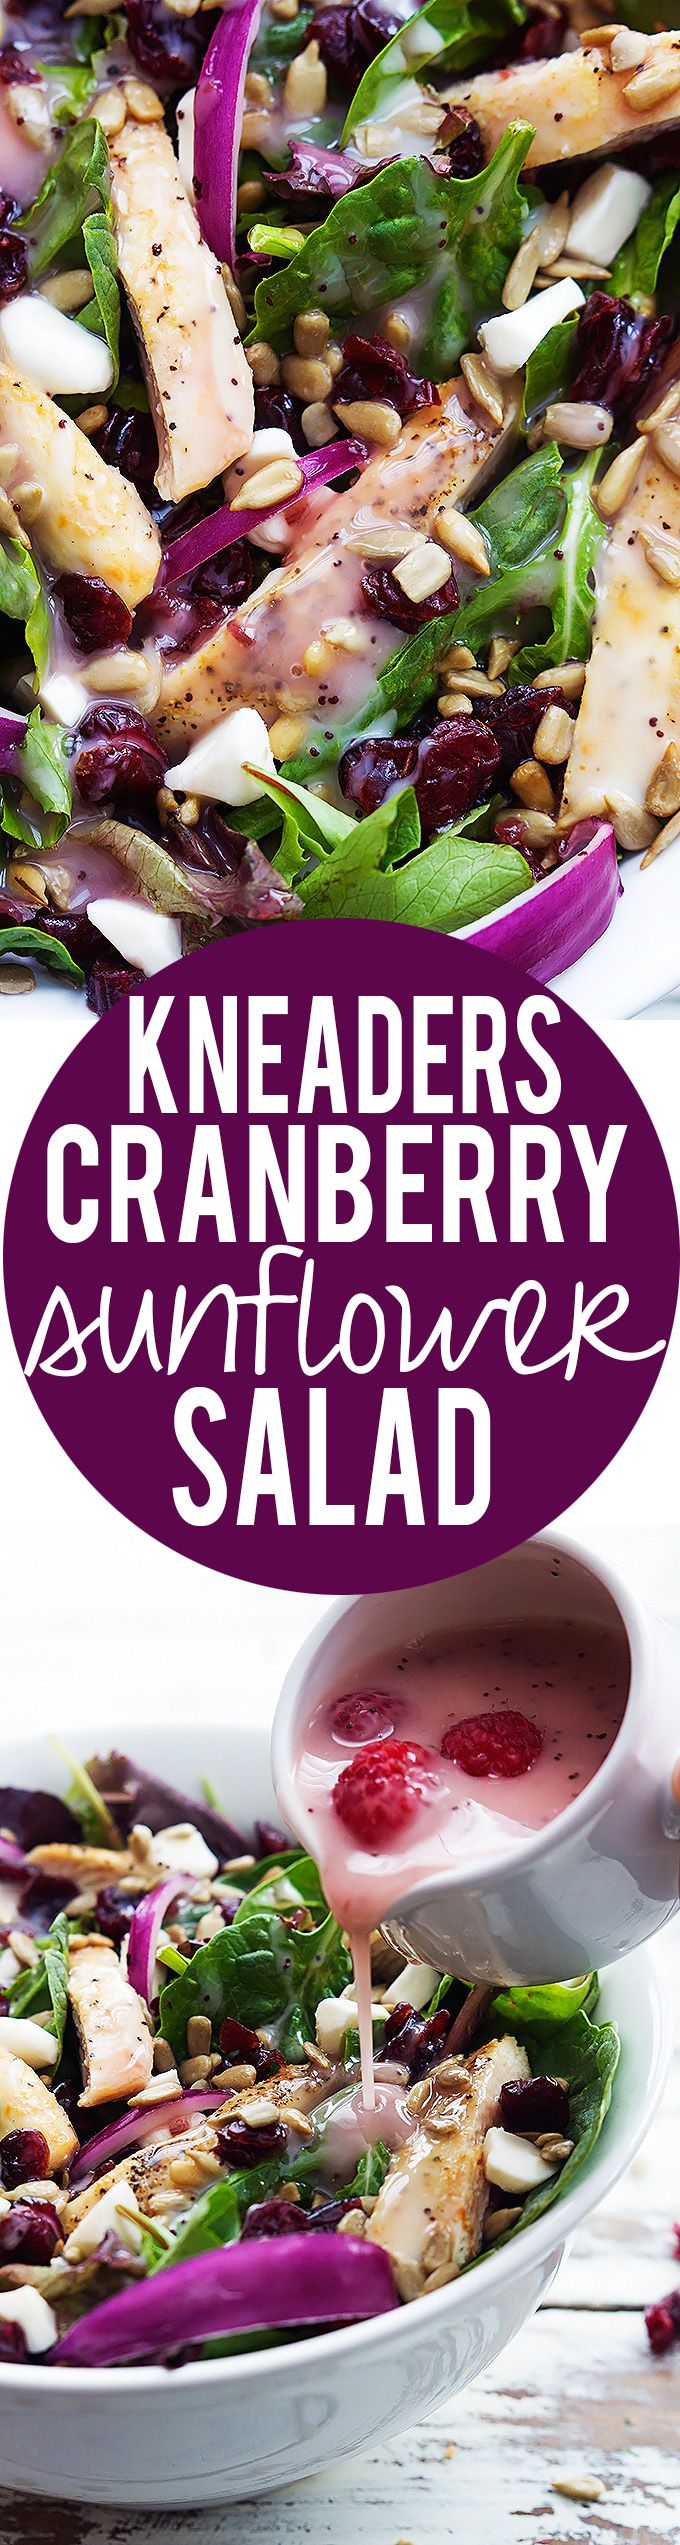 Amazing copycat recipe for Kneader's Cranberry Sunflower Salad! | Creme de la Crumb